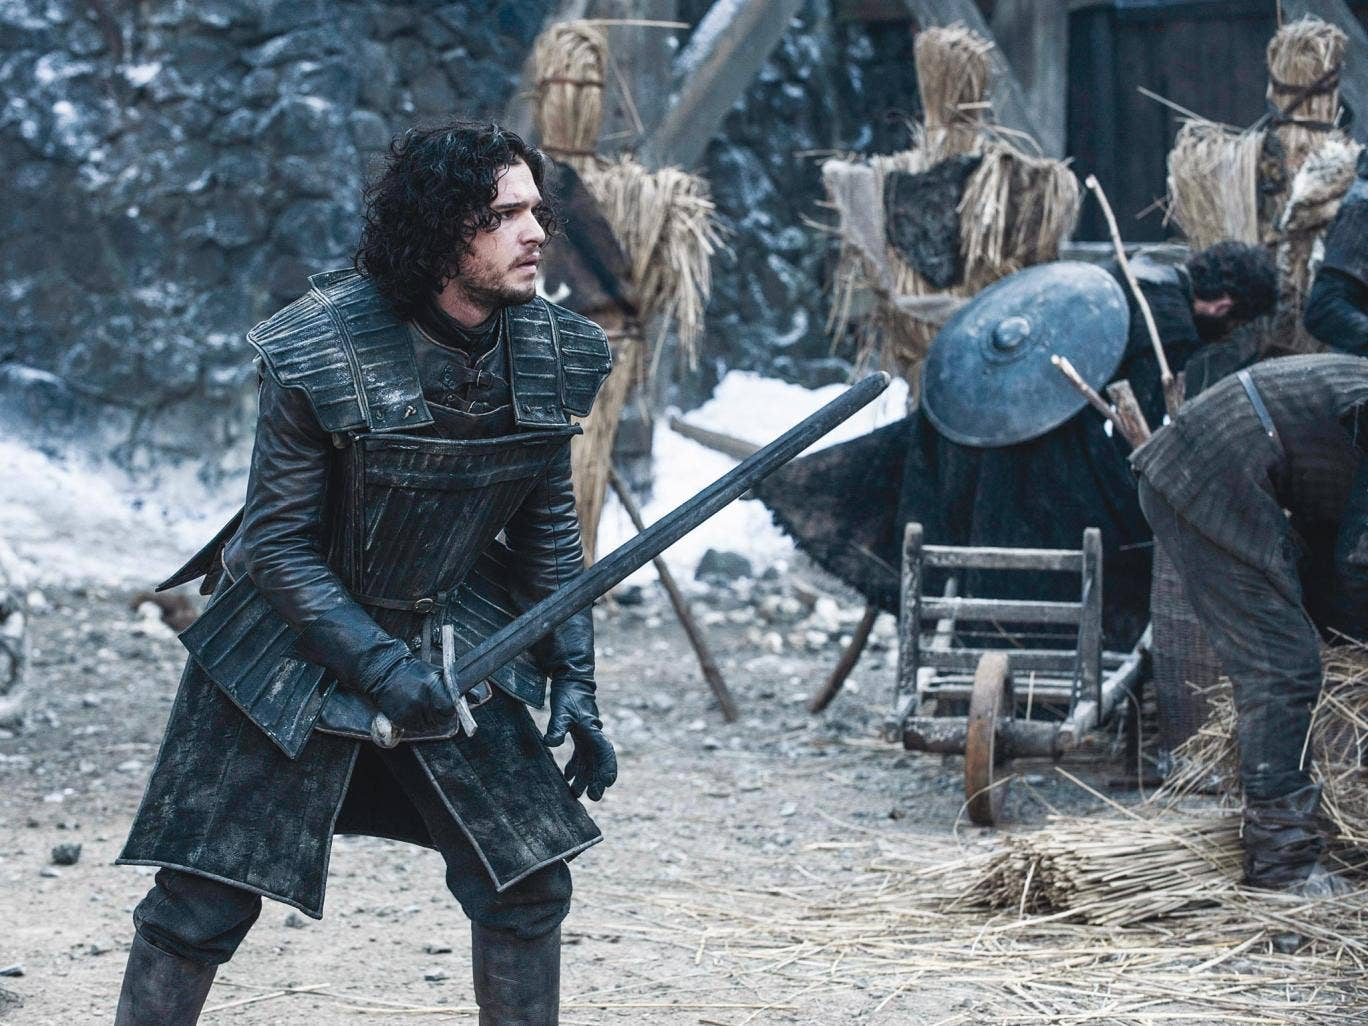 Jon Snow, played by Kit Harington,  trains for battle against the wildings at Castle Black